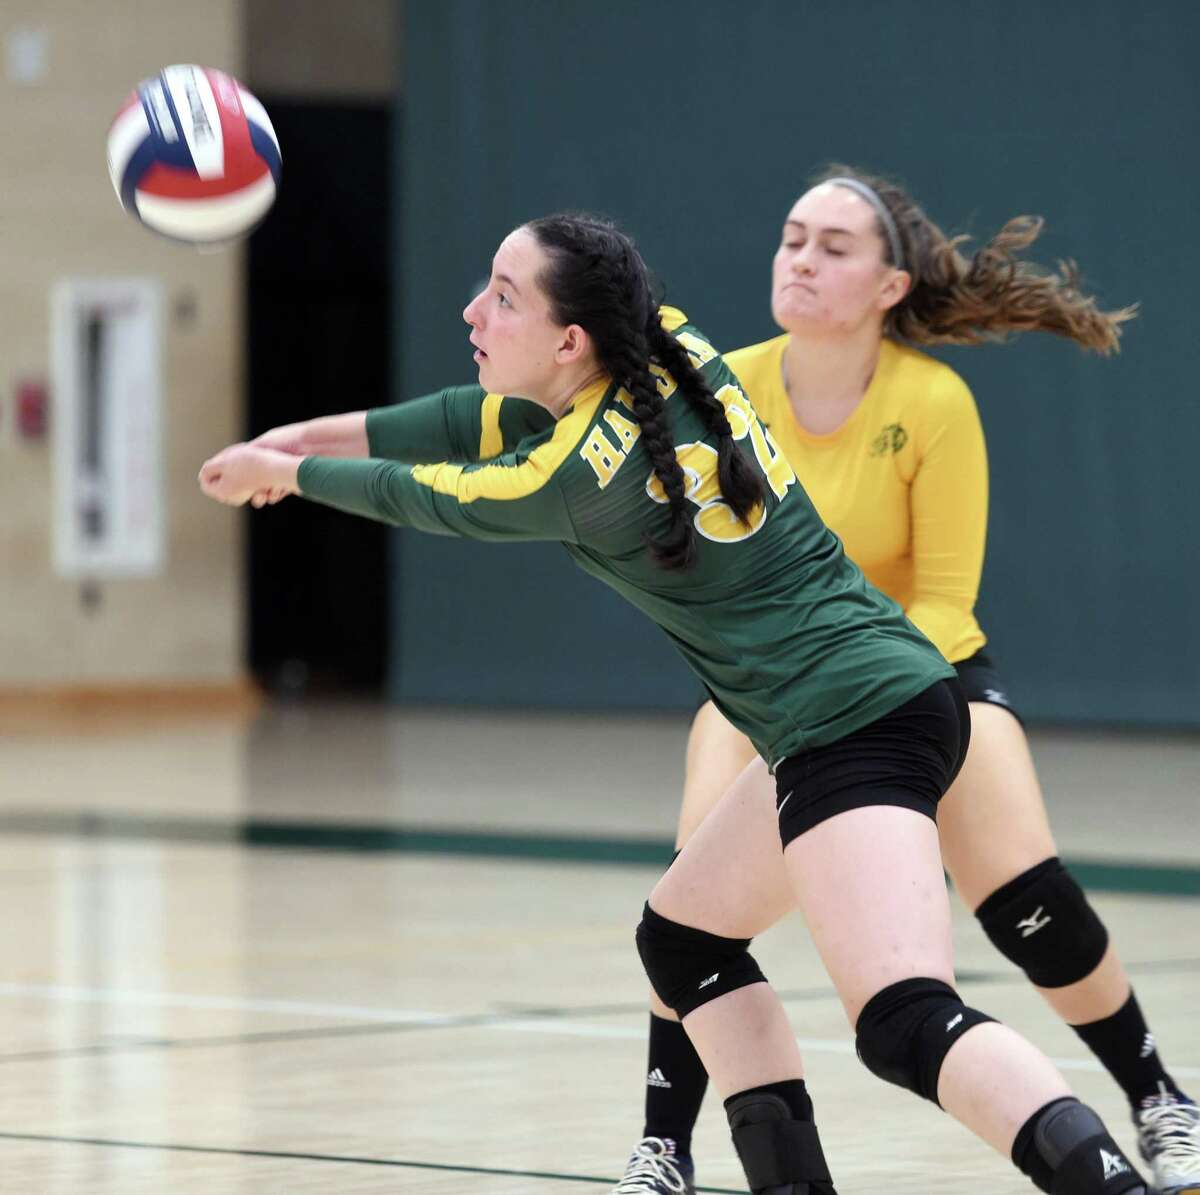 Maile Estacion of Hamden hits the ball in a volleyball match against Foran on September 23, 2019.